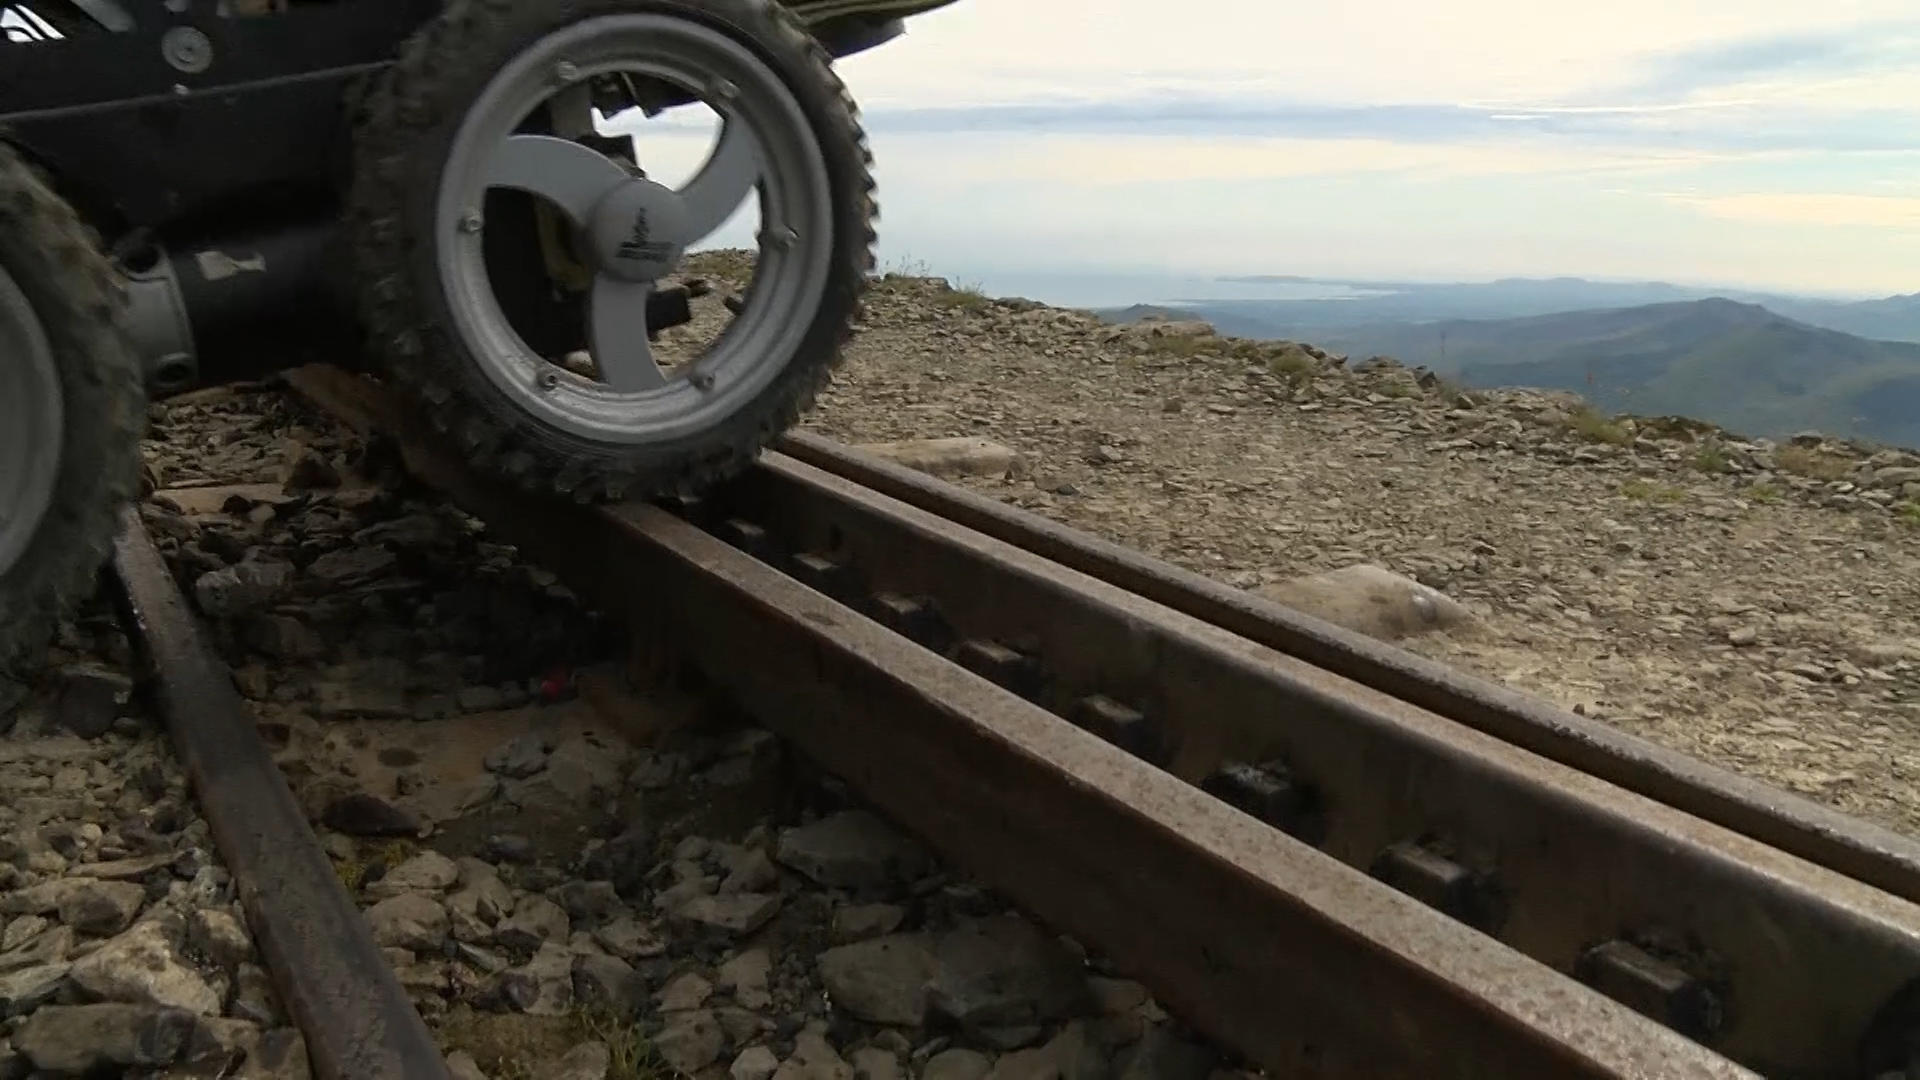 Mount Snowdon - navigating the wheel-chair over the tracks